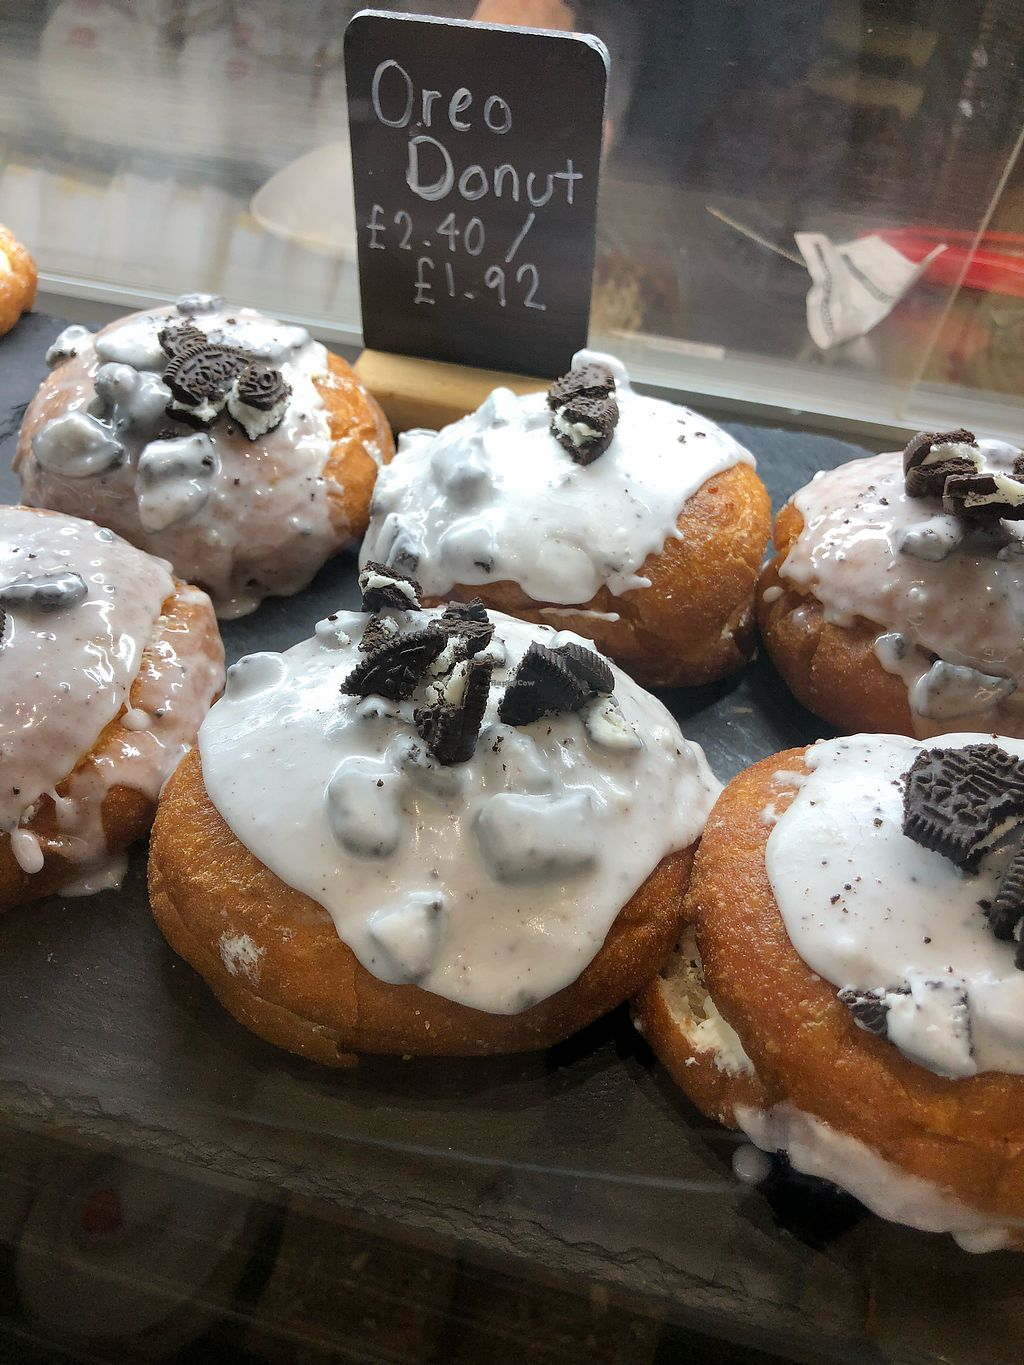 "Photo of Cafe Thrive  by <a href=""/members/profile/broganlane"">broganlane</a> <br/>Vegan Oreo doughnuts!  <br/> January 20, 2018  - <a href='/contact/abuse/image/98116/348920'>Report</a>"